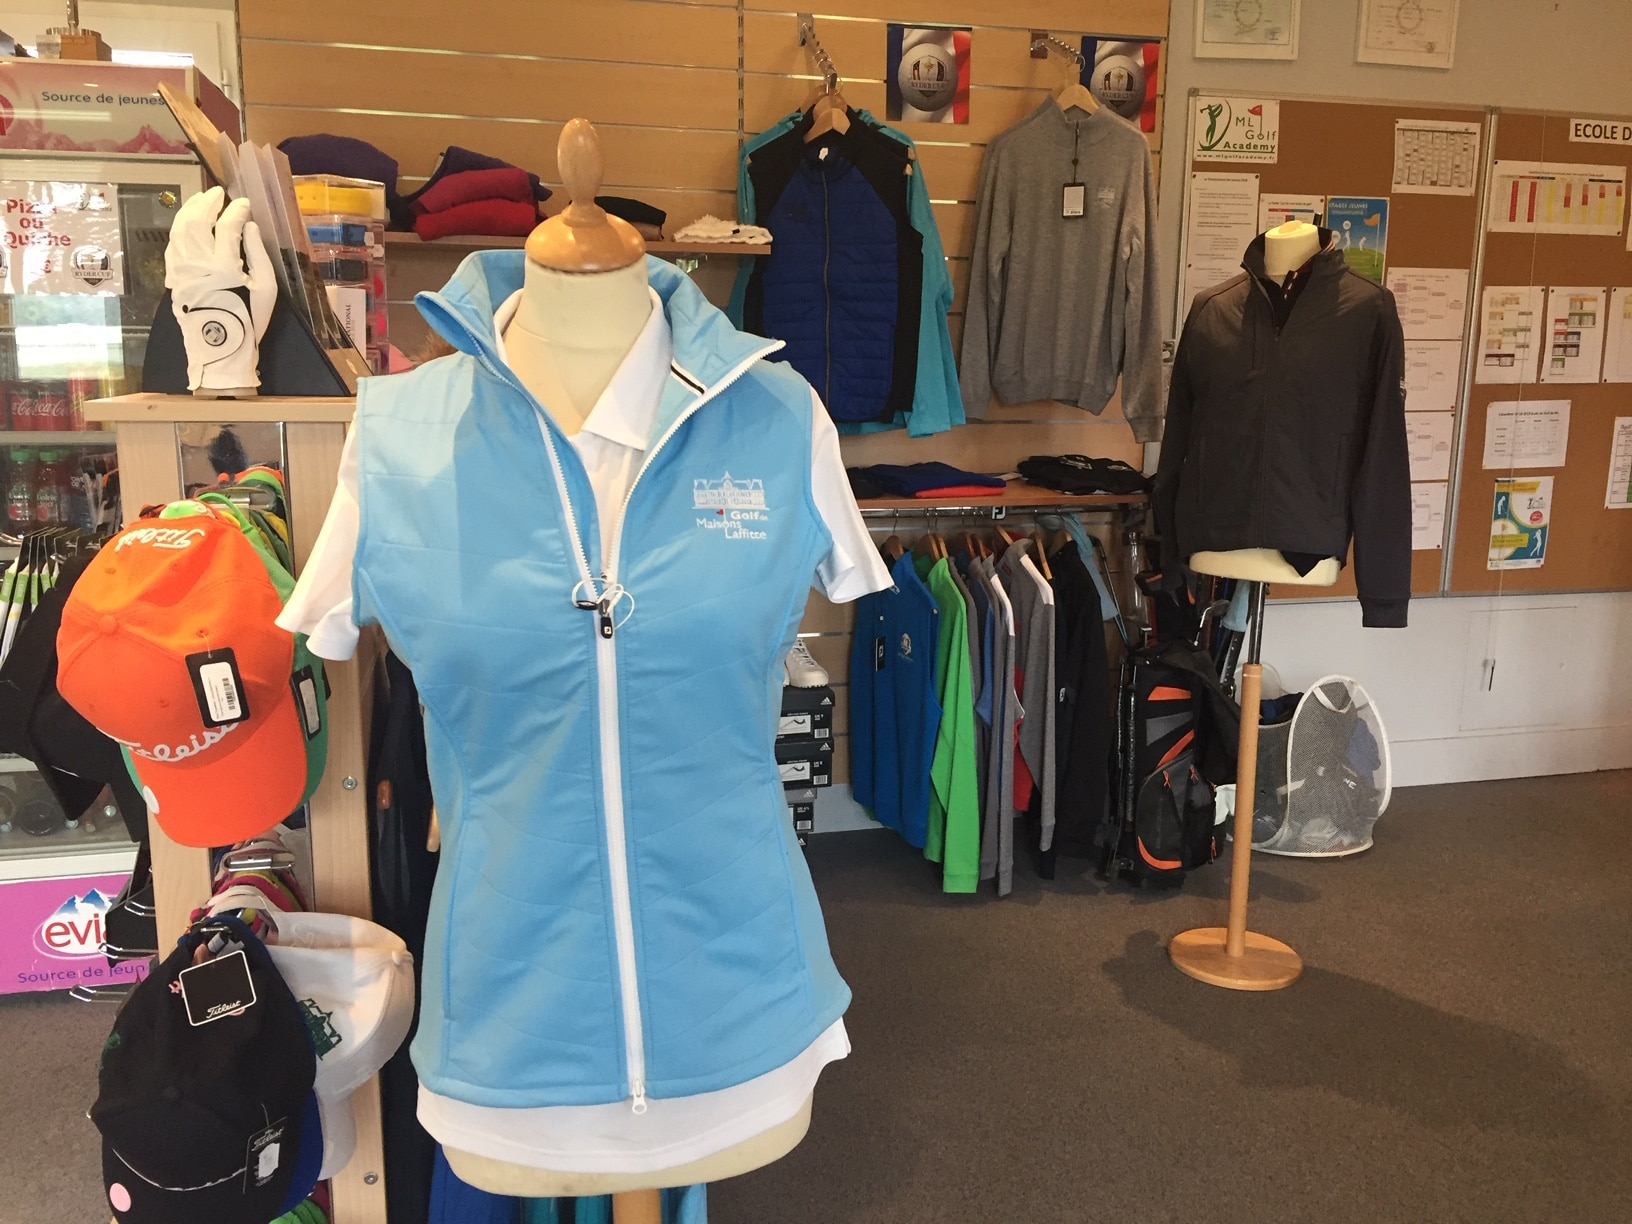 Pro shop du golf de Maisons-Lafitte